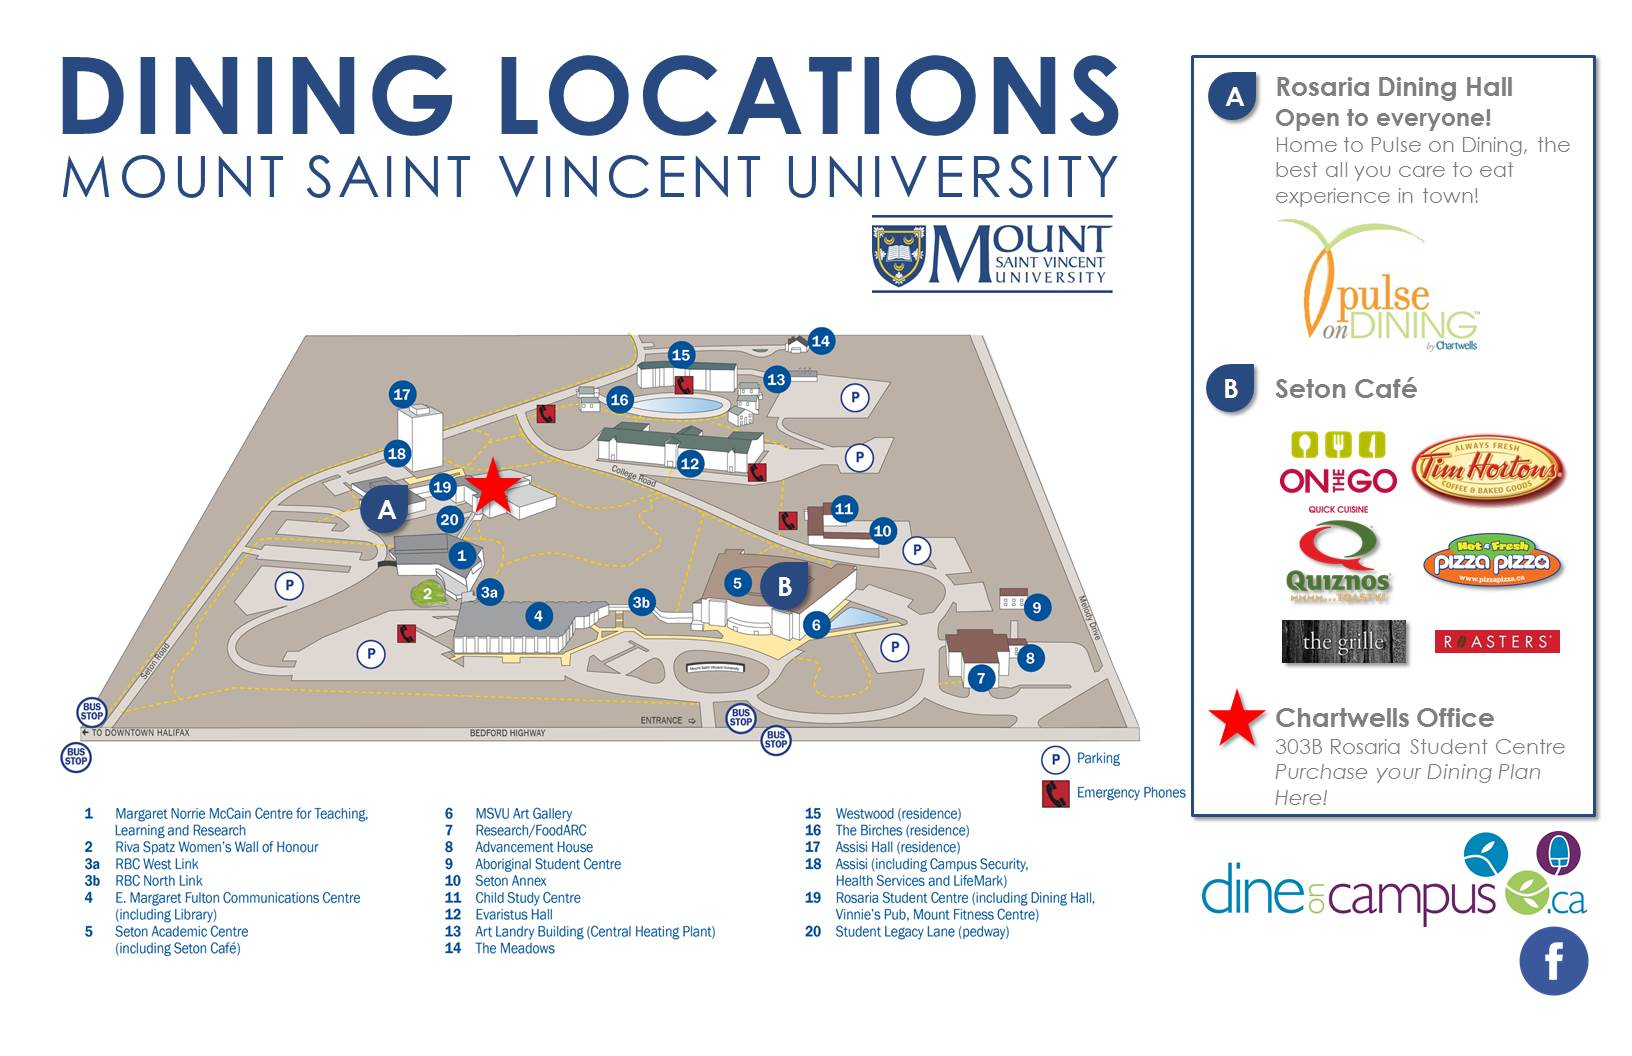 Map for Dining